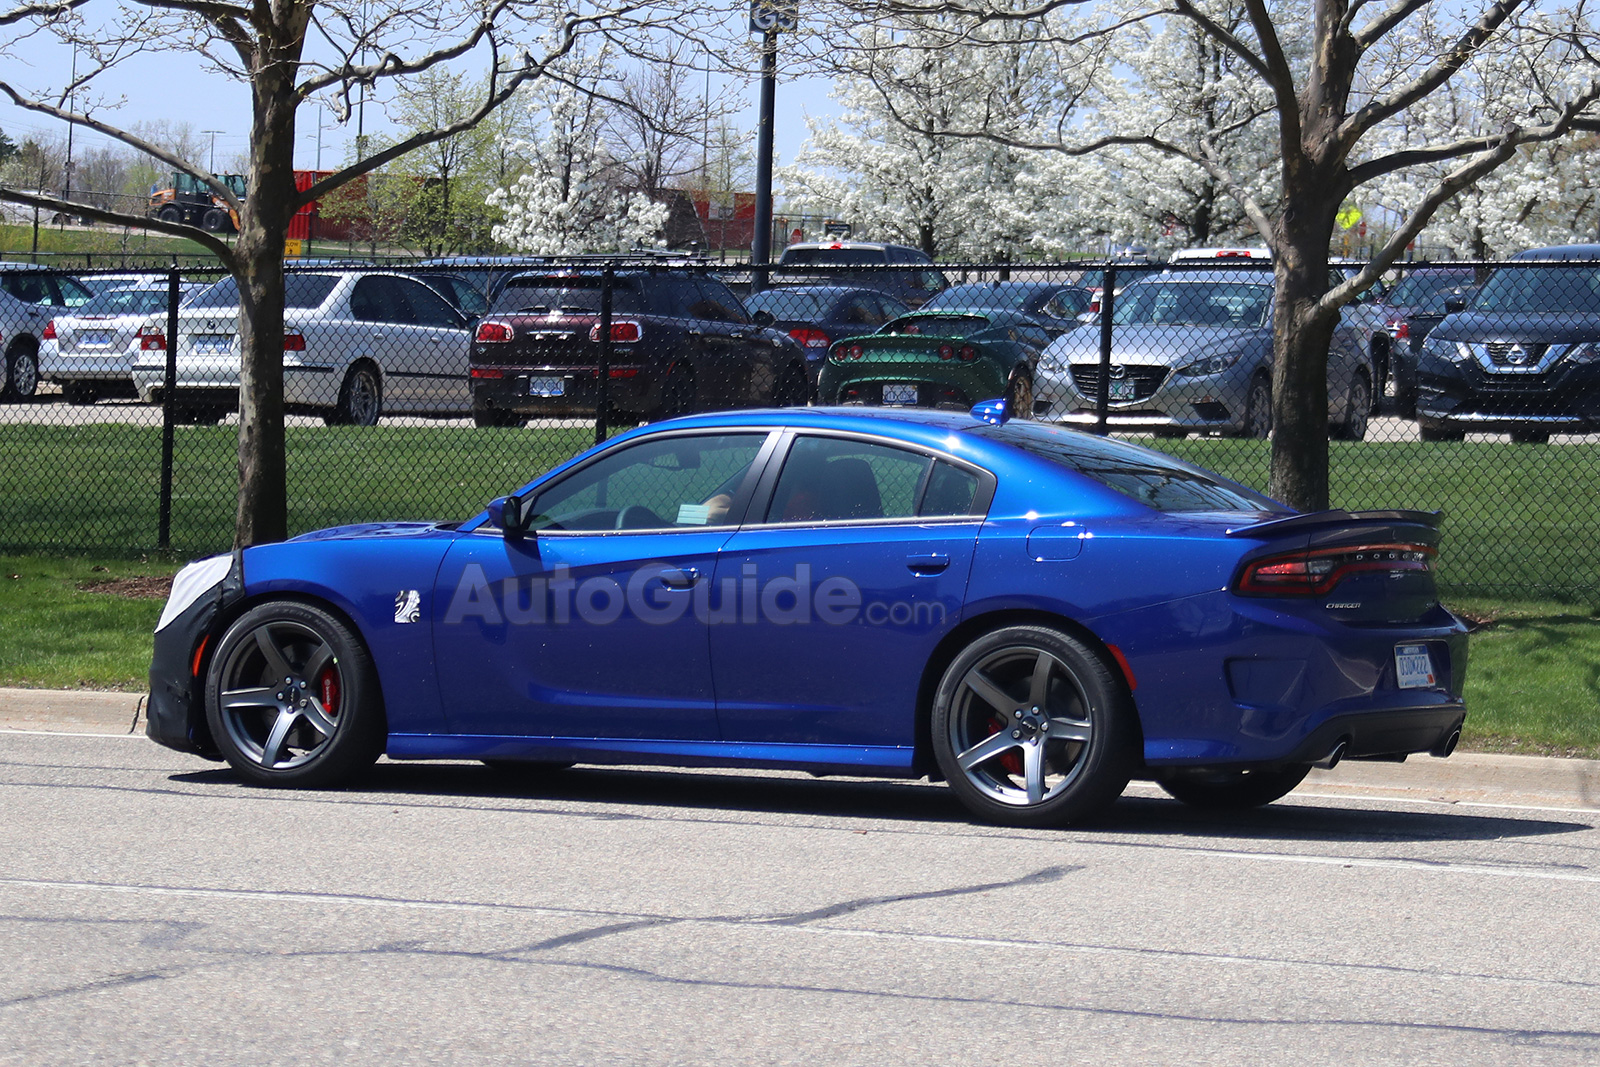 2019 Dodge Charger Hellcat Spied Testing For The First Time